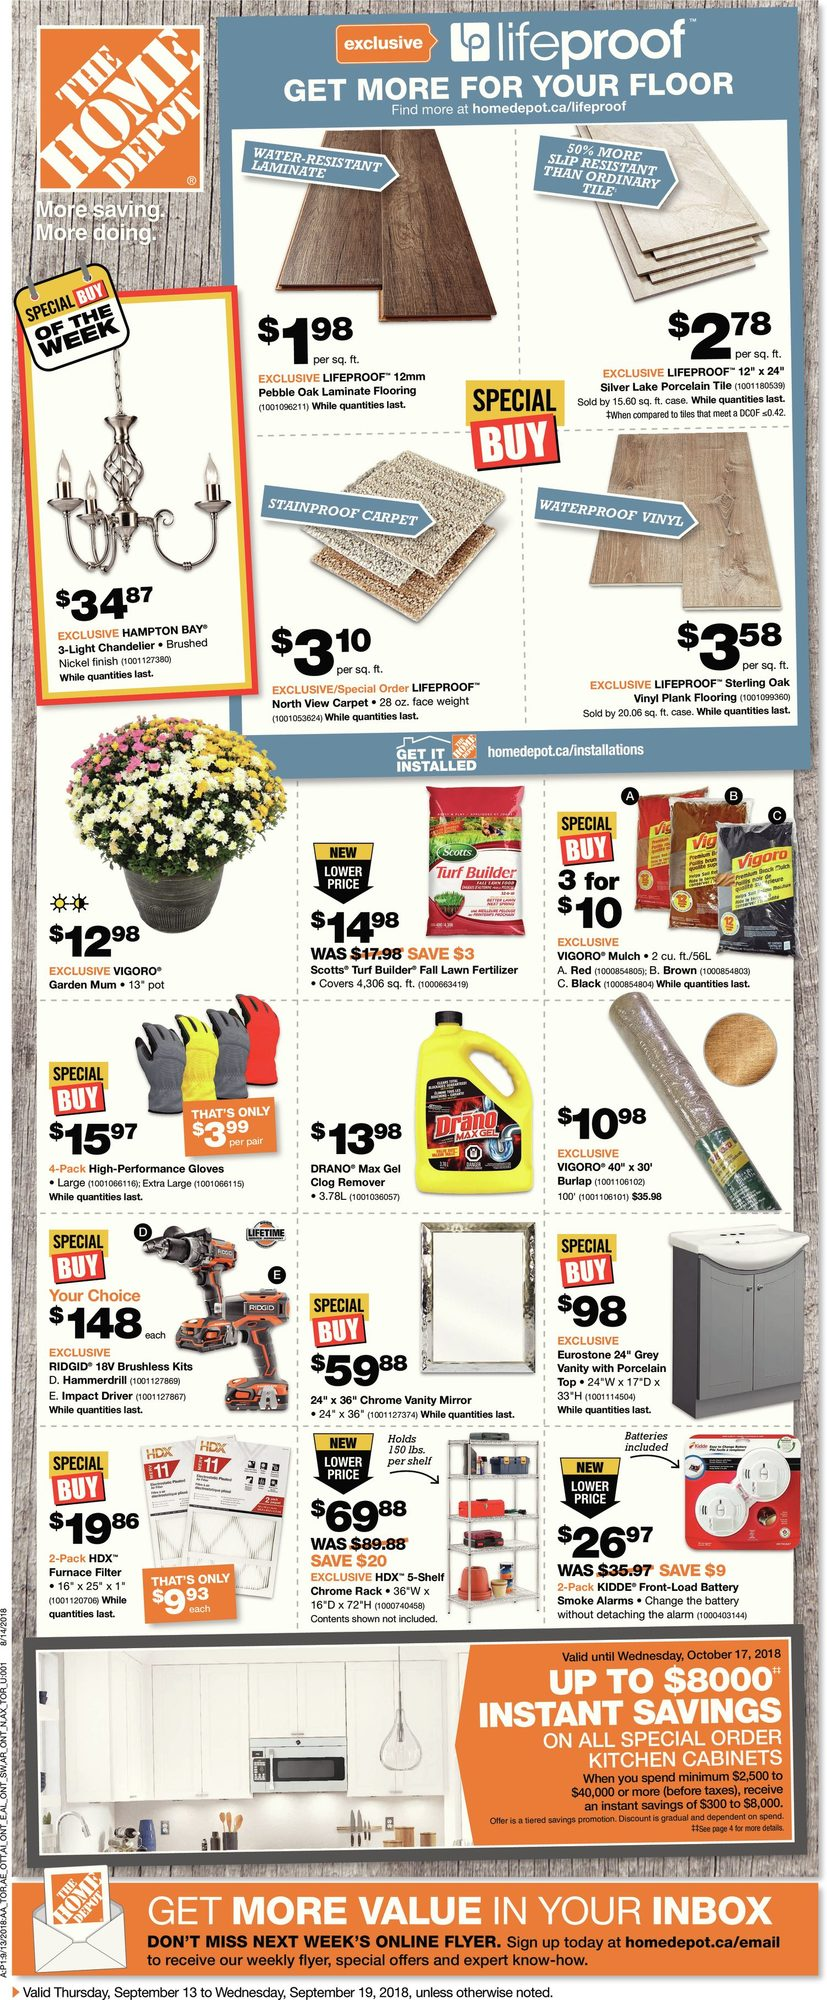 Weekly - Home Depot September 13 2018 | YP Shopwise